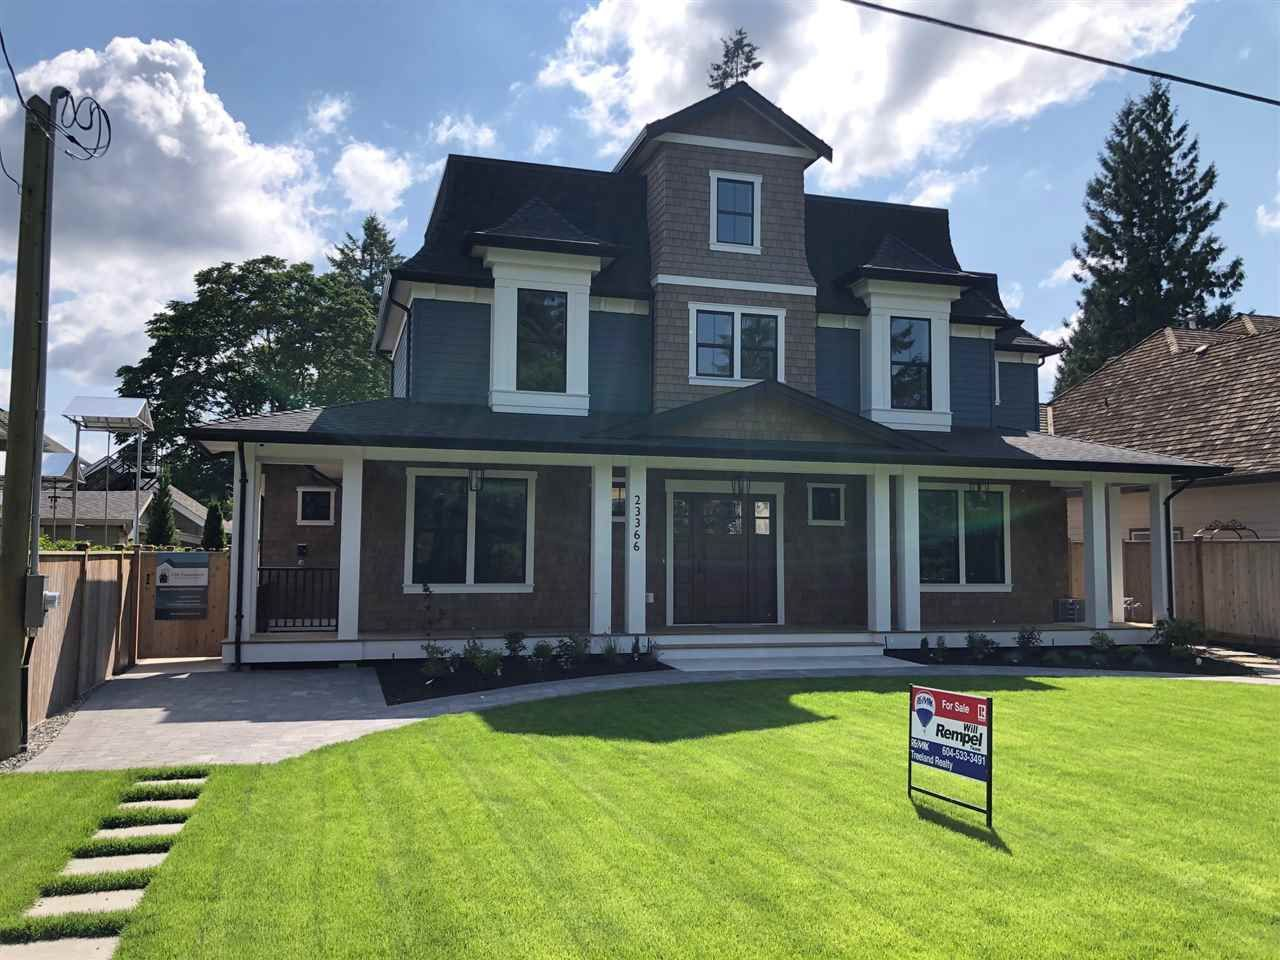 """Main Photo: 23366 FRANCIS Avenue in Langley: Fort Langley House for sale in """"Fort Langley"""" : MLS®# R2476346"""